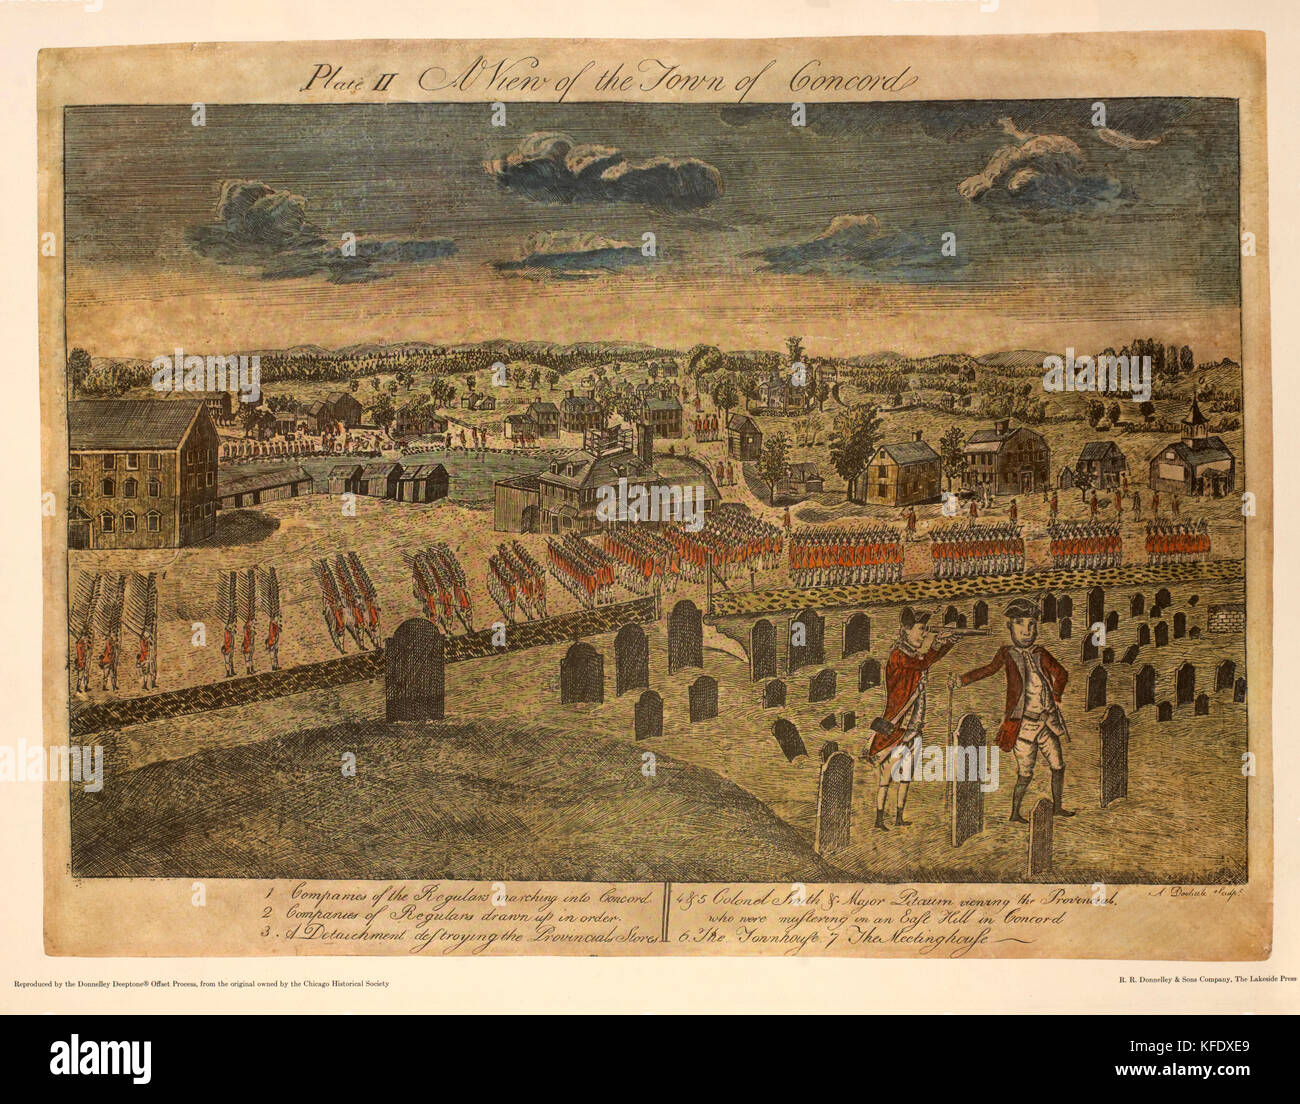 A View of the Town of Concord, Plate II, by Ralph Earl, 1775, Hand-Colored Etching and Engraving by Amos Doolittle, - Stock Image